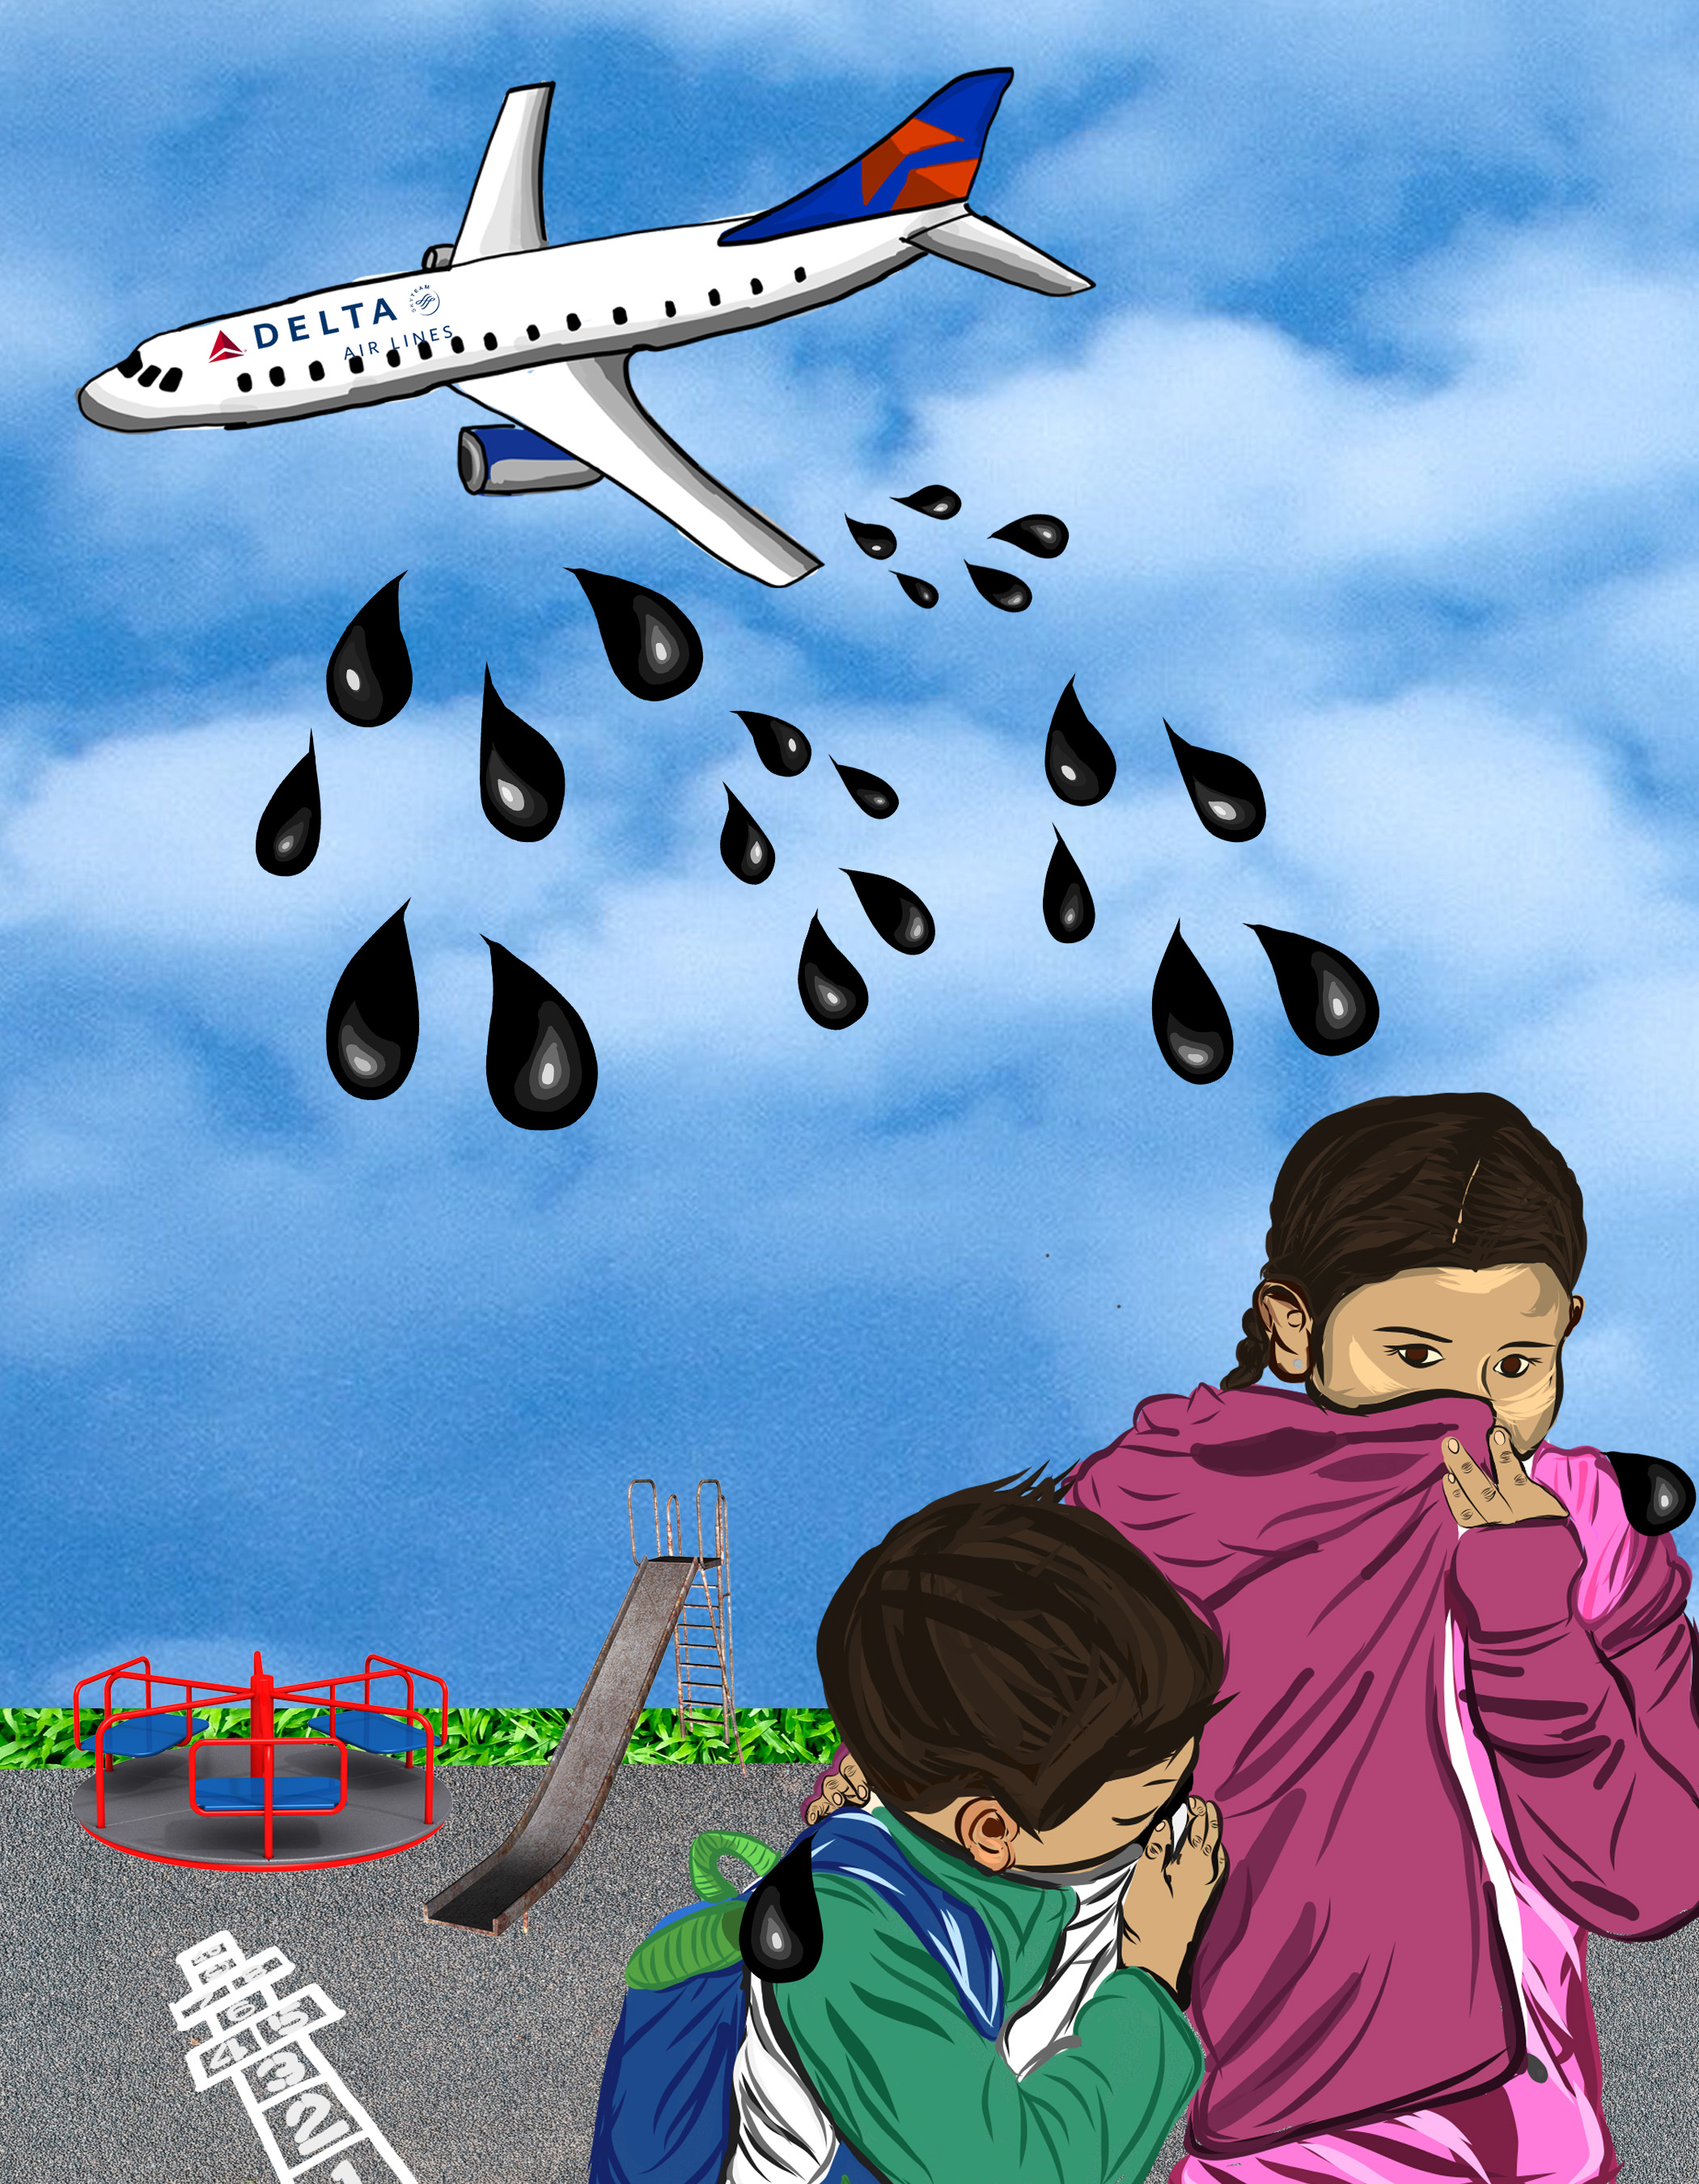 image of young children covering their mouths as they flee from oil being spilled on them from plane